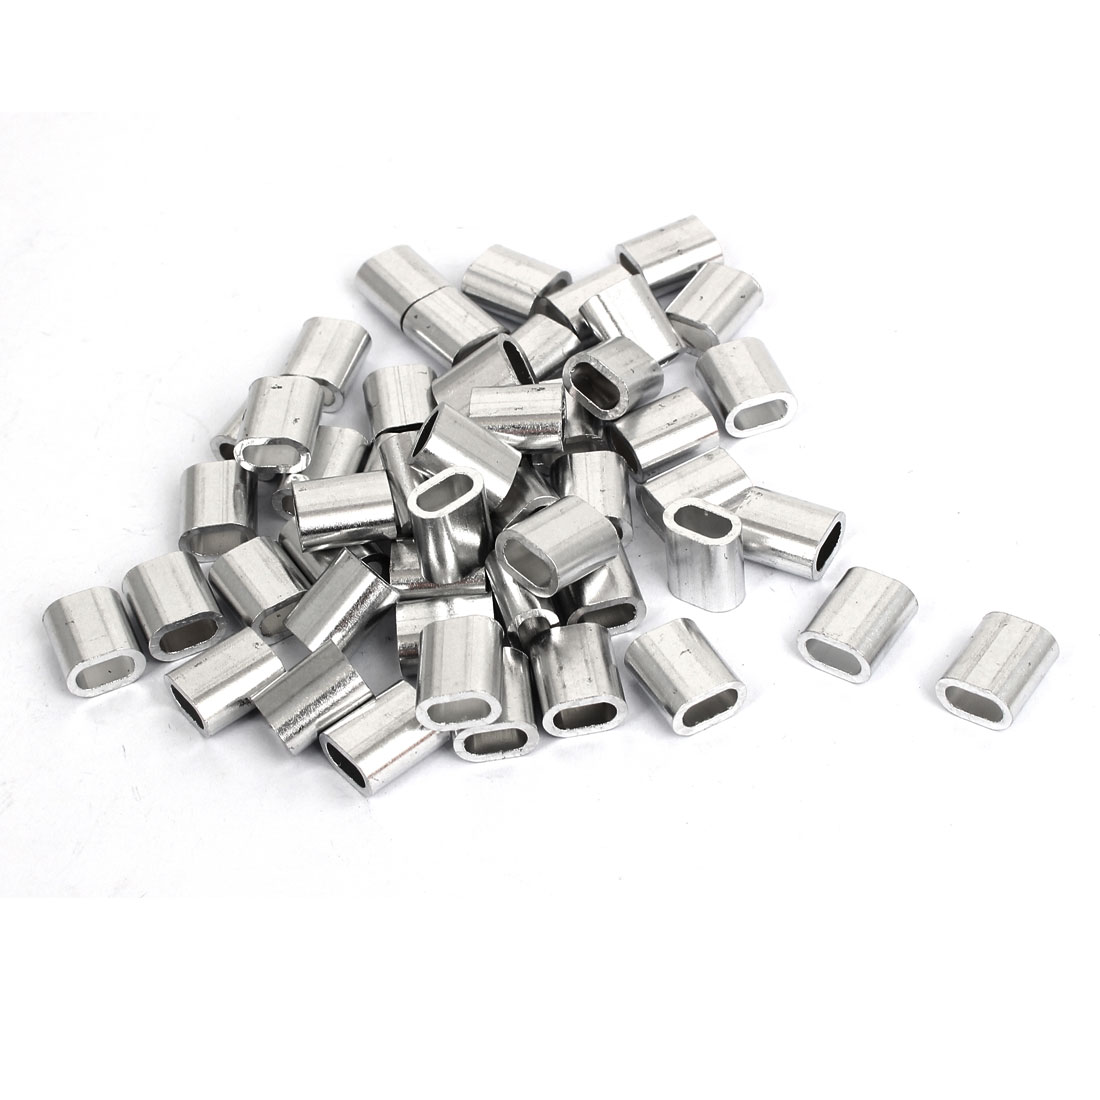 50pcs M4 Oval Aluminum Sleeves Clamps for 4mm Wire Rope Swage Clip